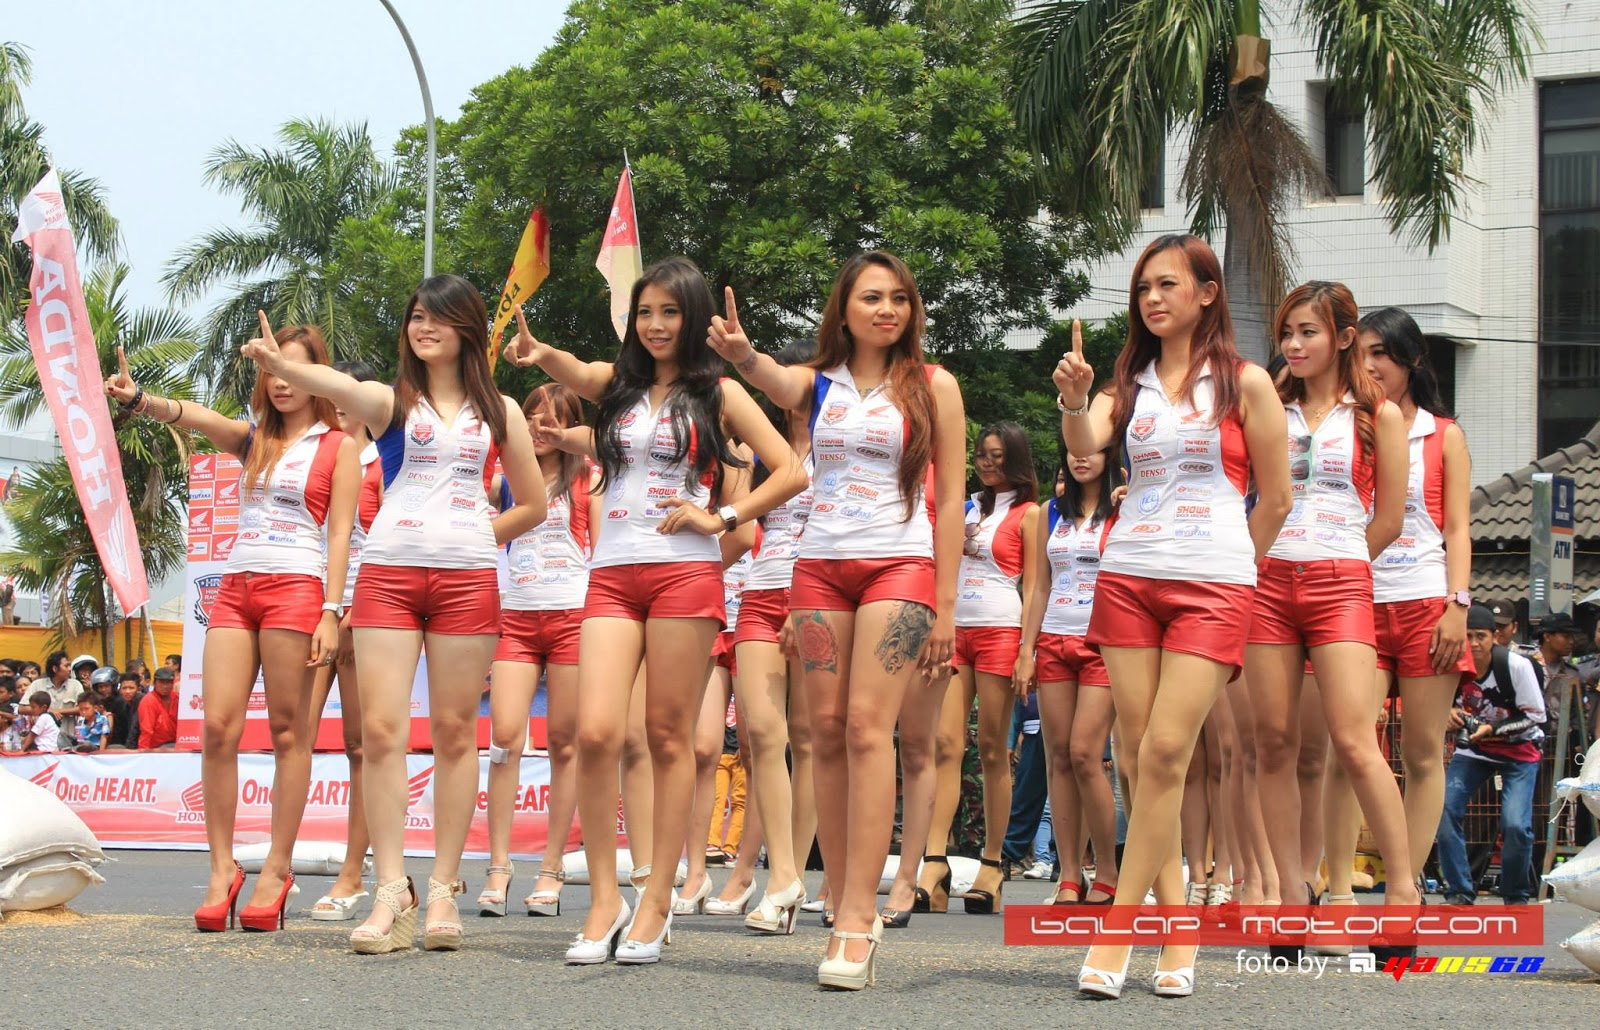 Sorry, that Umbrella girls indonesia nude question Rather